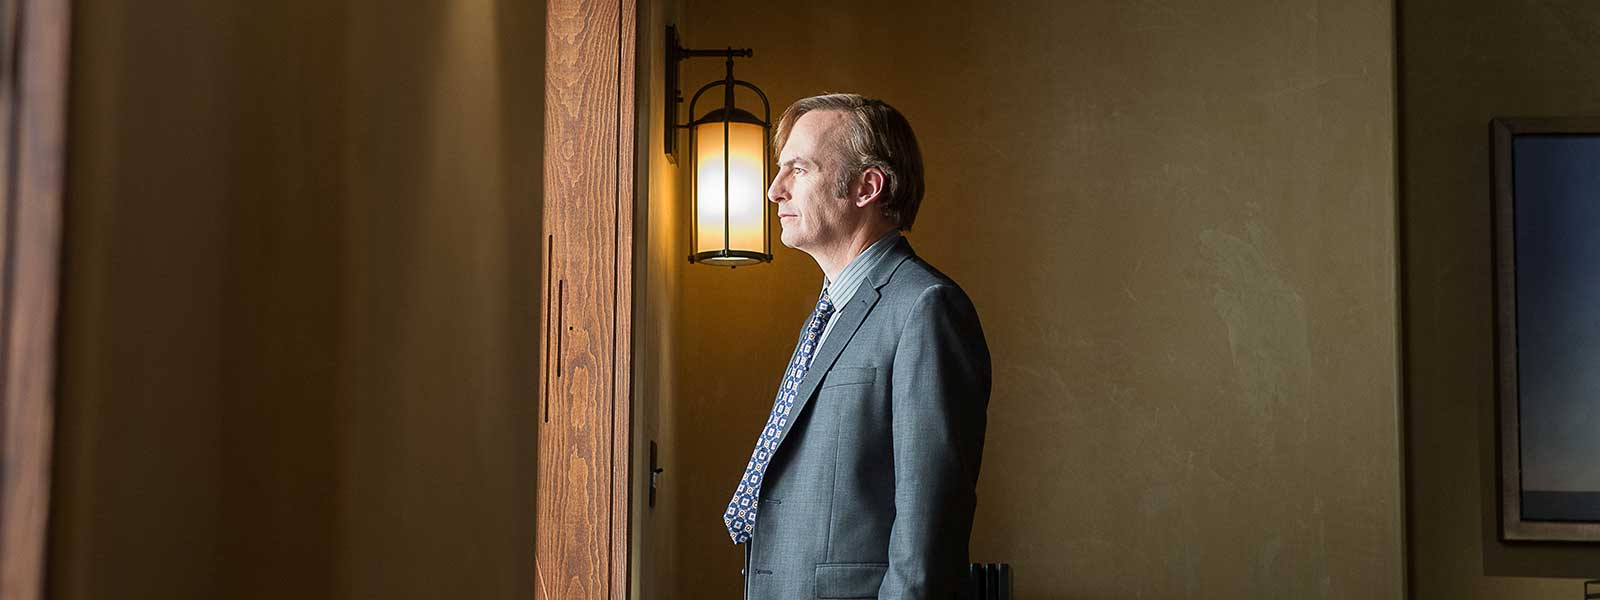 better-call-saul-episode-201-jimmy-odenkirk-post-800×600